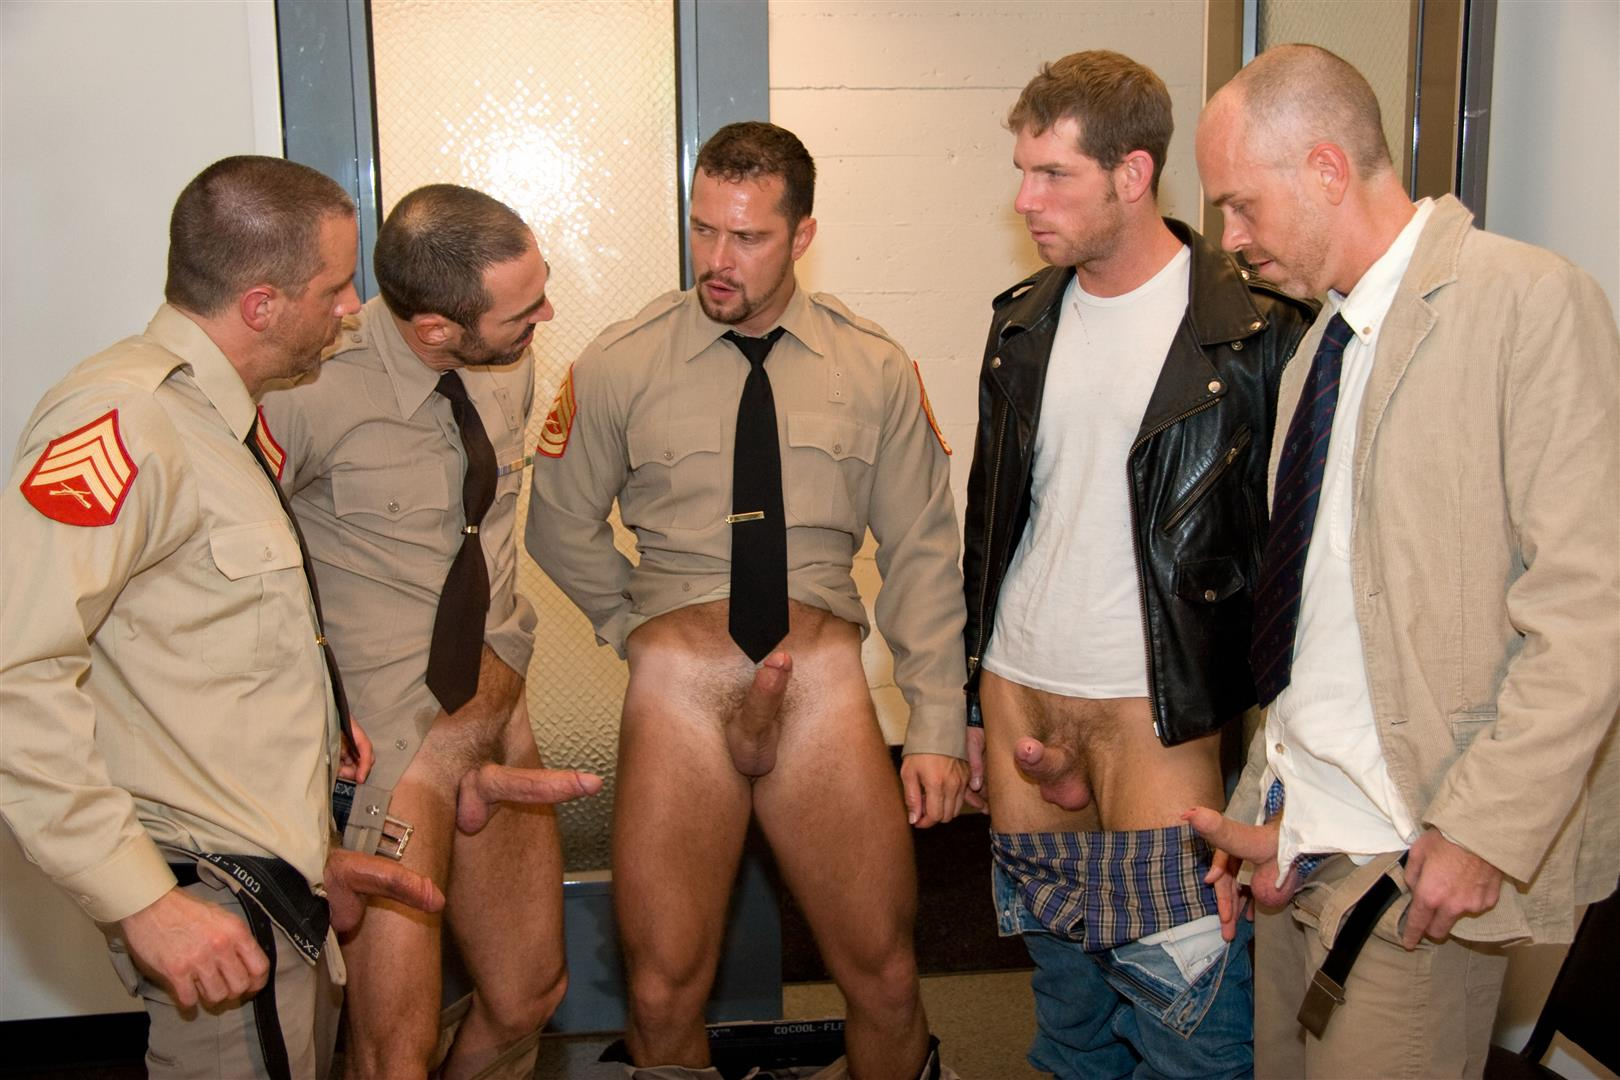 TitanMen-Gunnery-Sgt-McCool-Gay-Military-Porn-Classic-Free-Download-18 All Time Gay Military Porn Classic